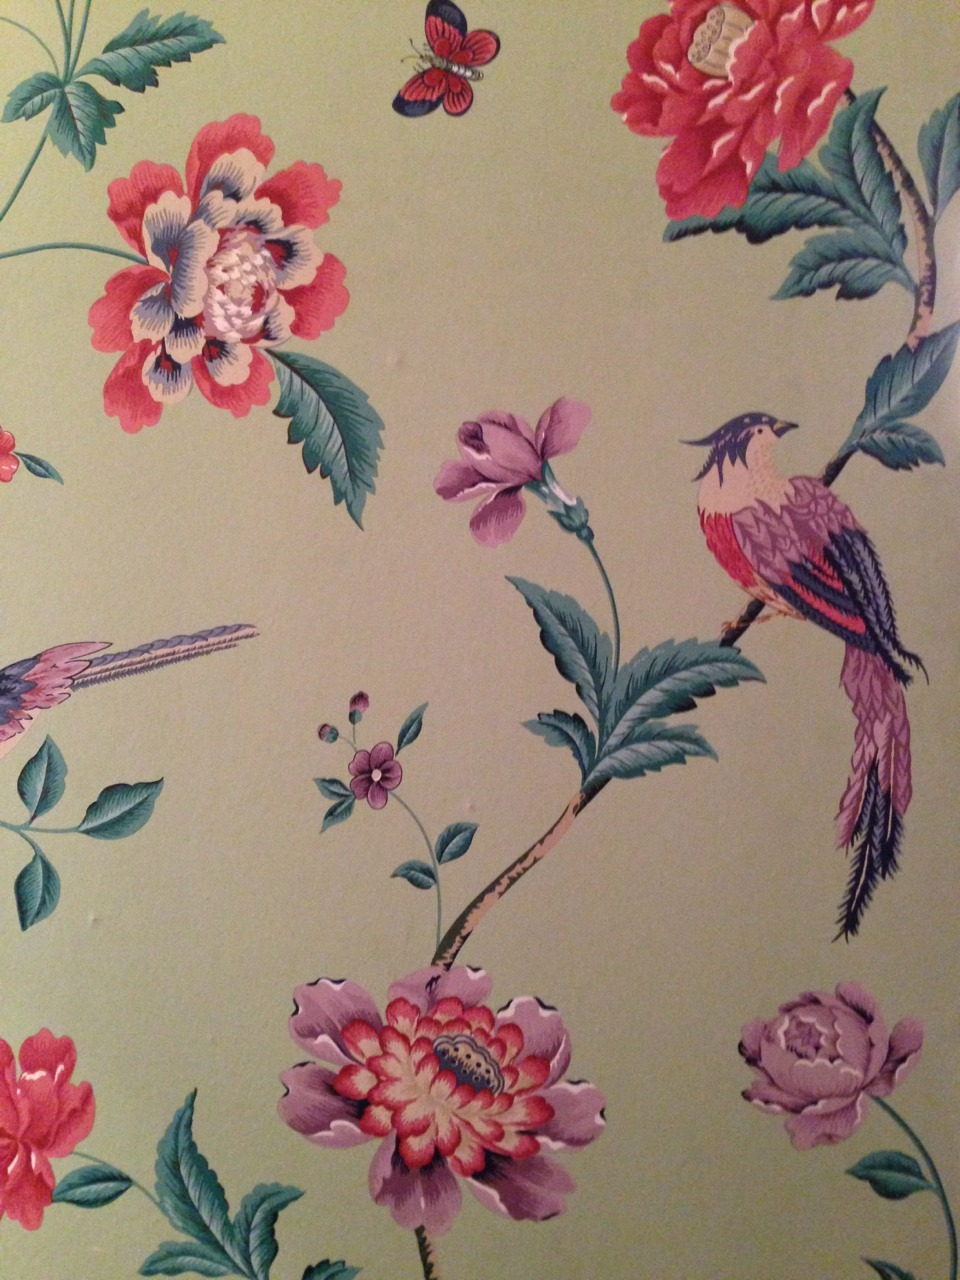 Beautiful wallpaper at my friend Tiago & Sofia's new house. I really like the peaceful mix of pastel colors here.